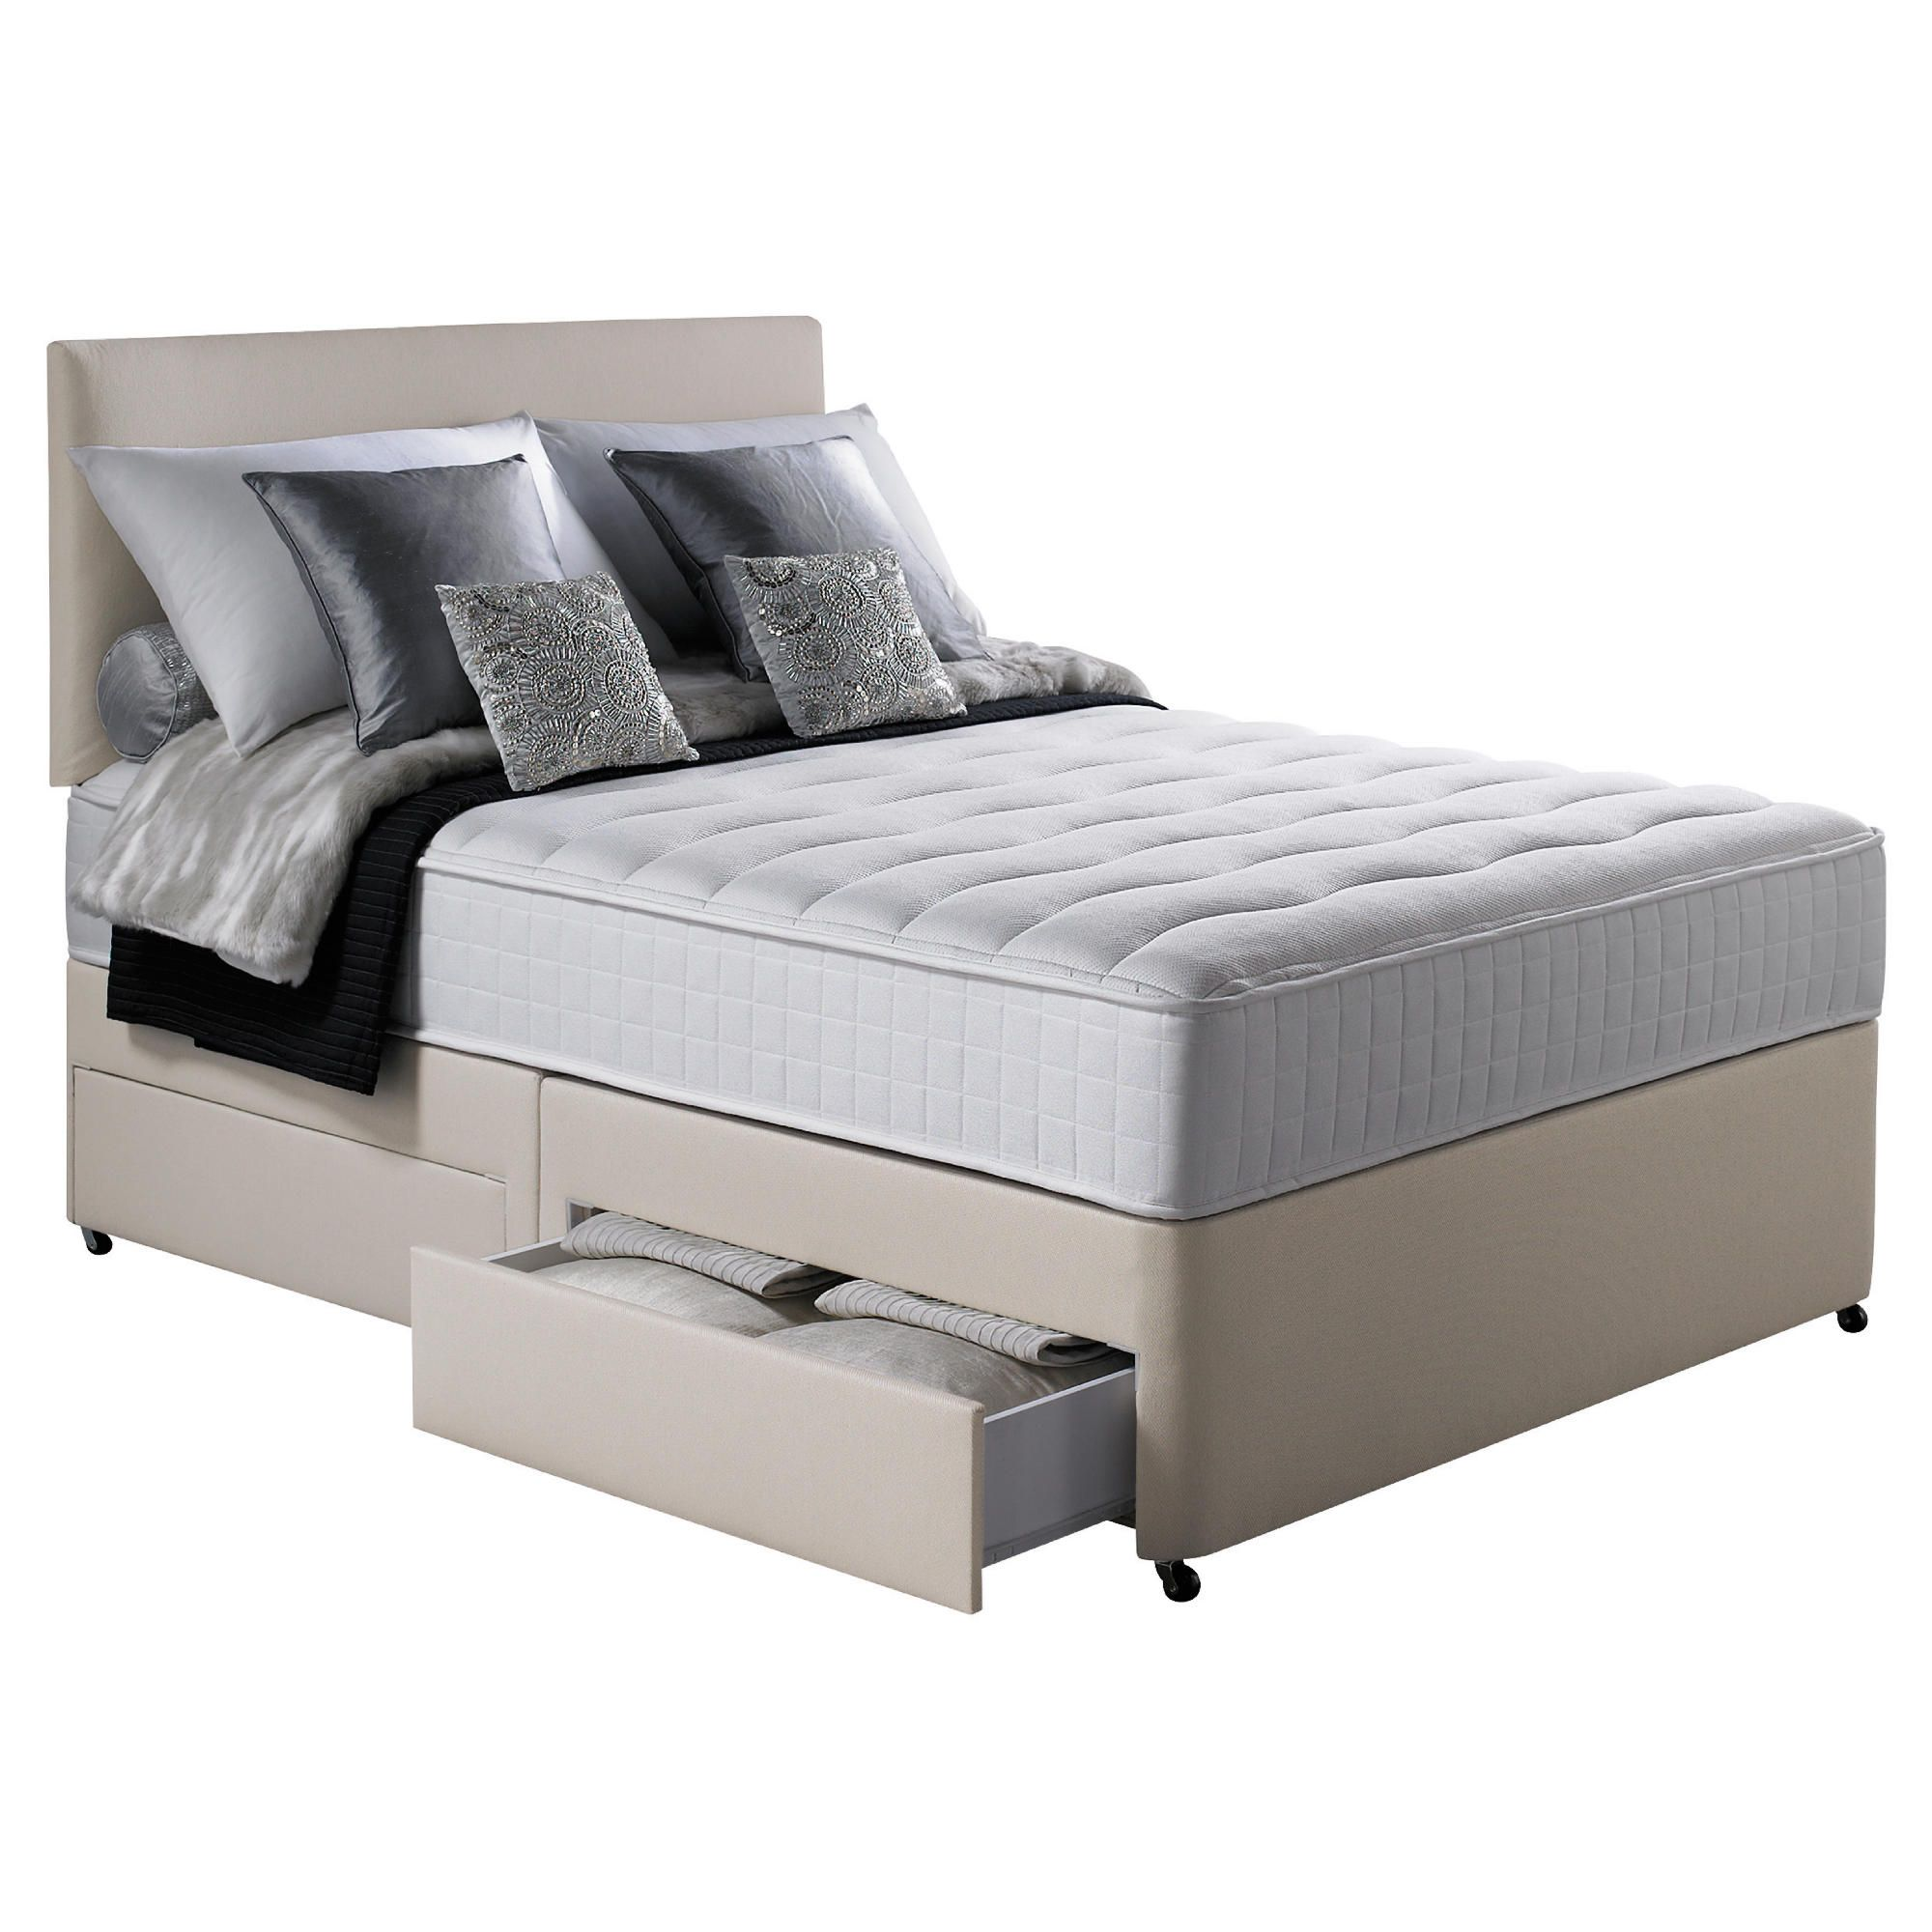 Myshop for Double divan bed with four drawers